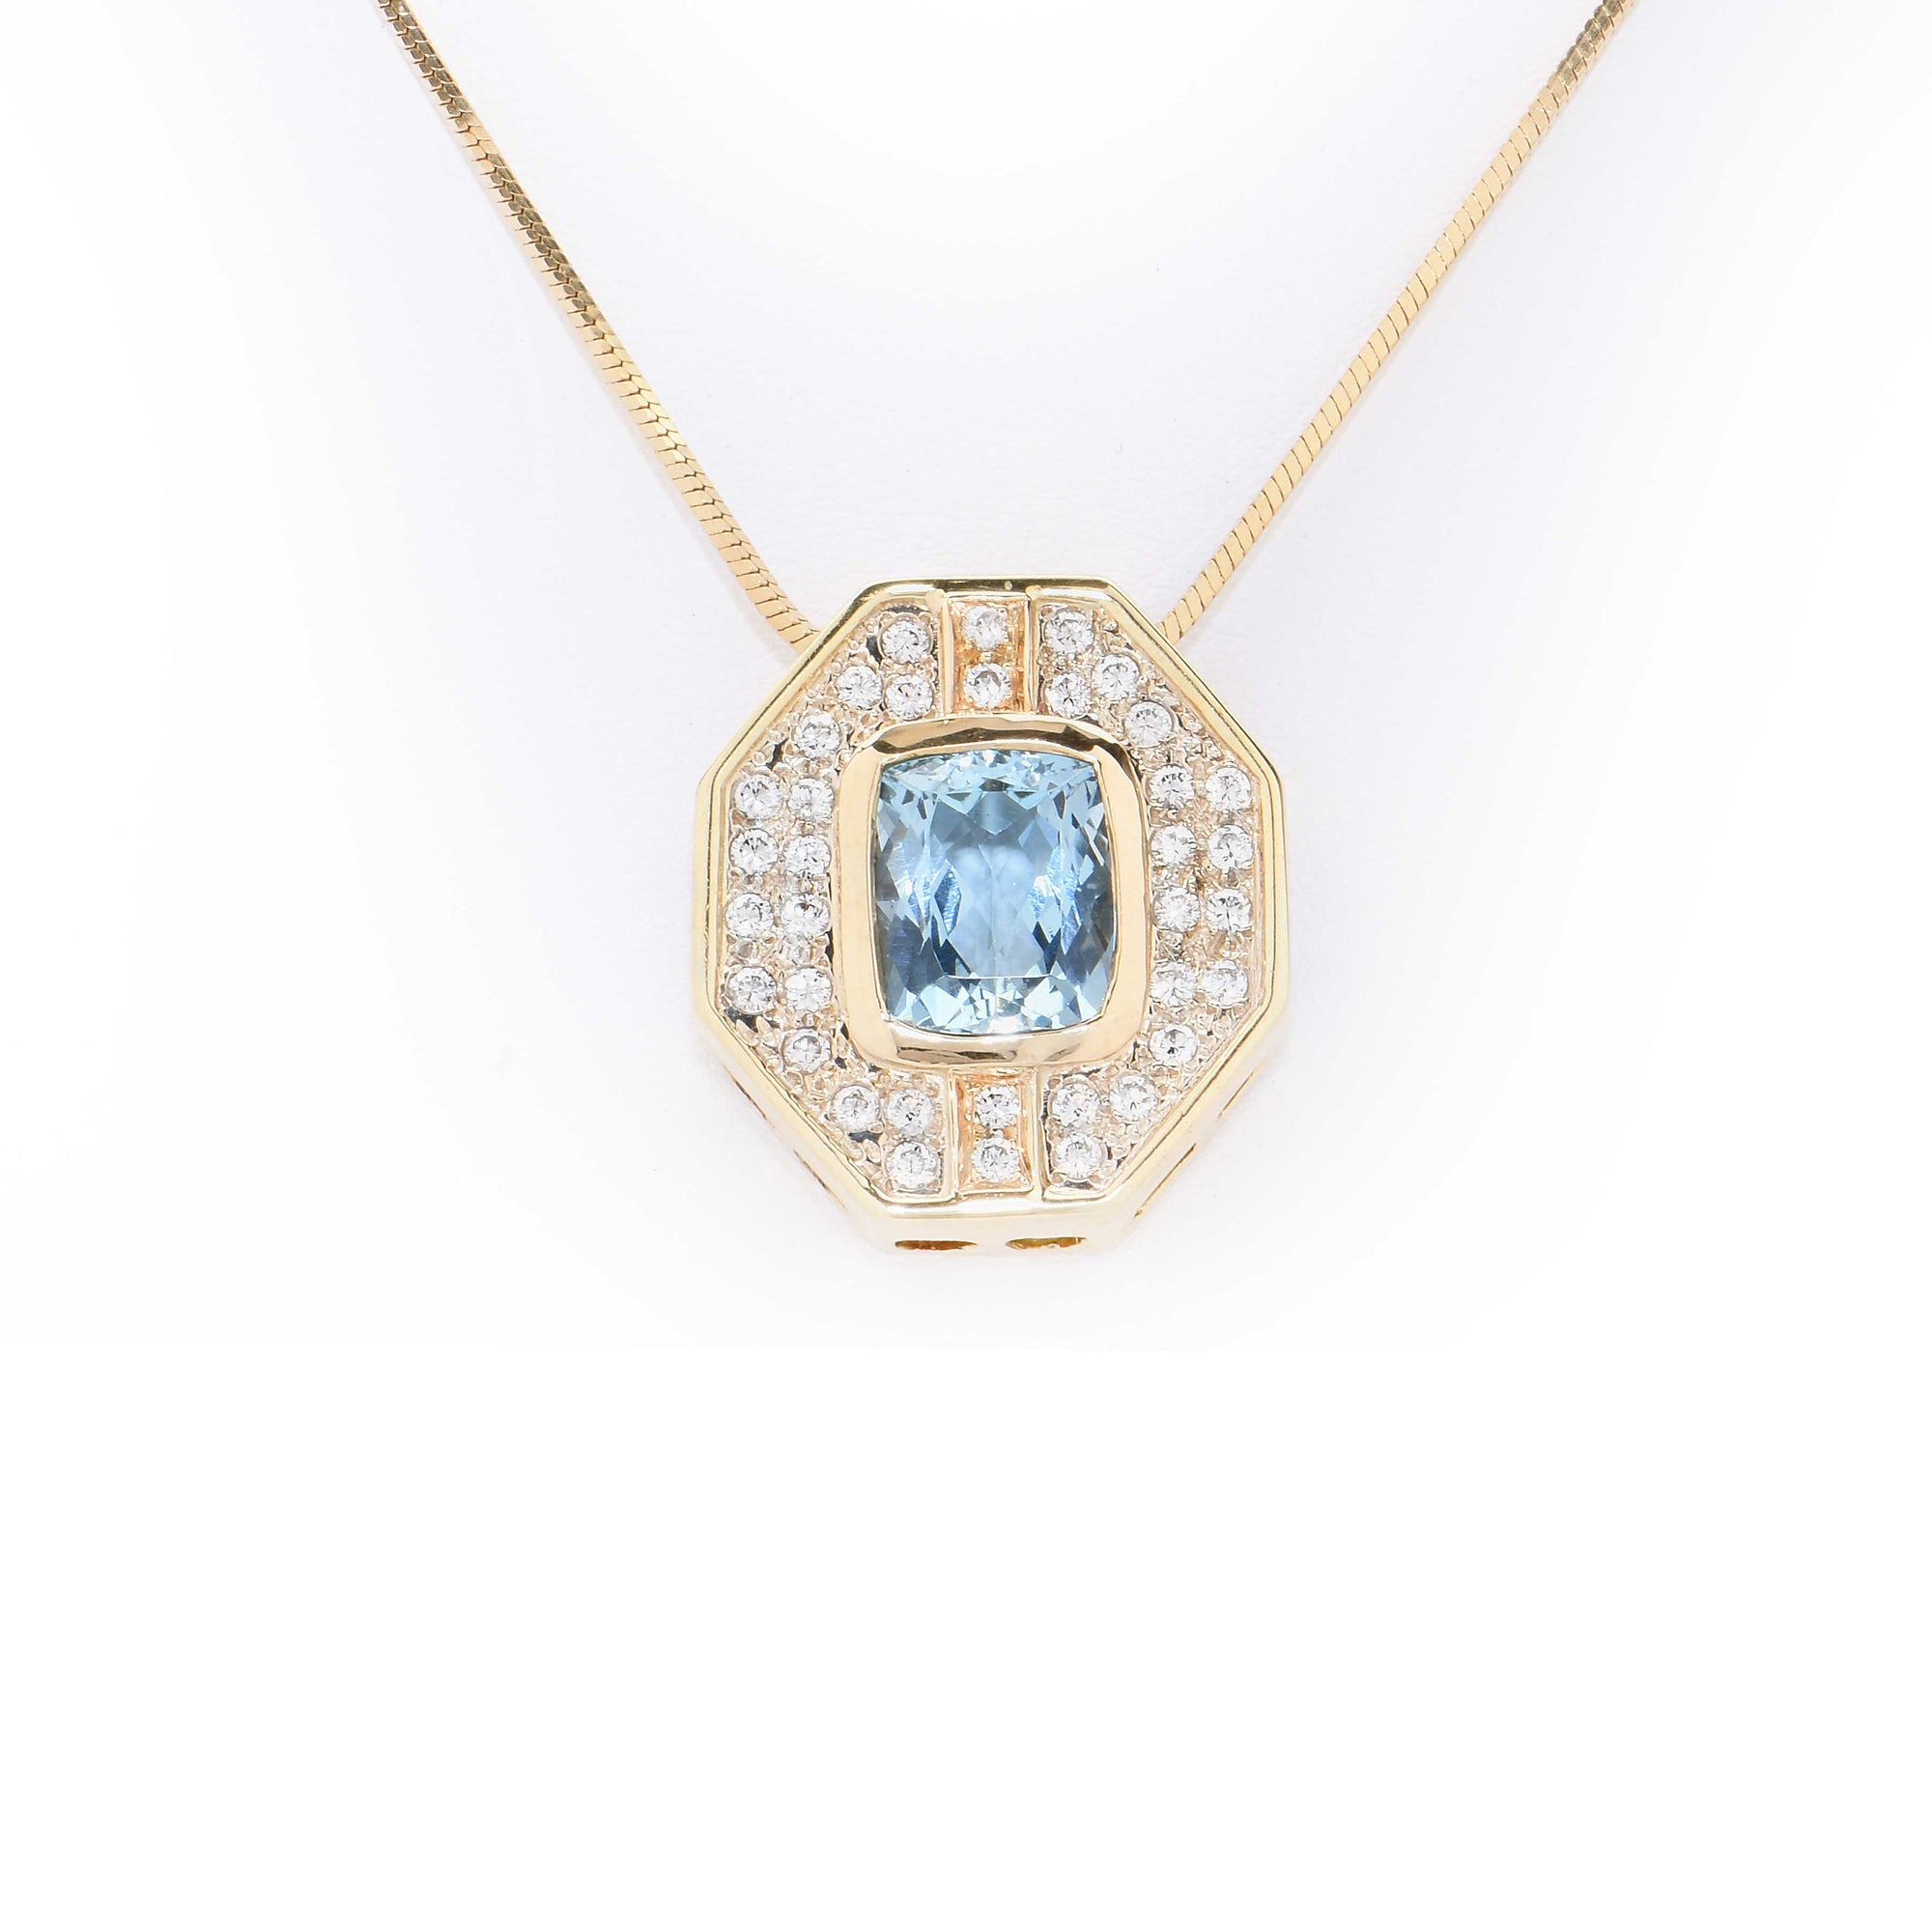 5.5 Carat Aquamarine & Diamond Gold Pendant Necklace